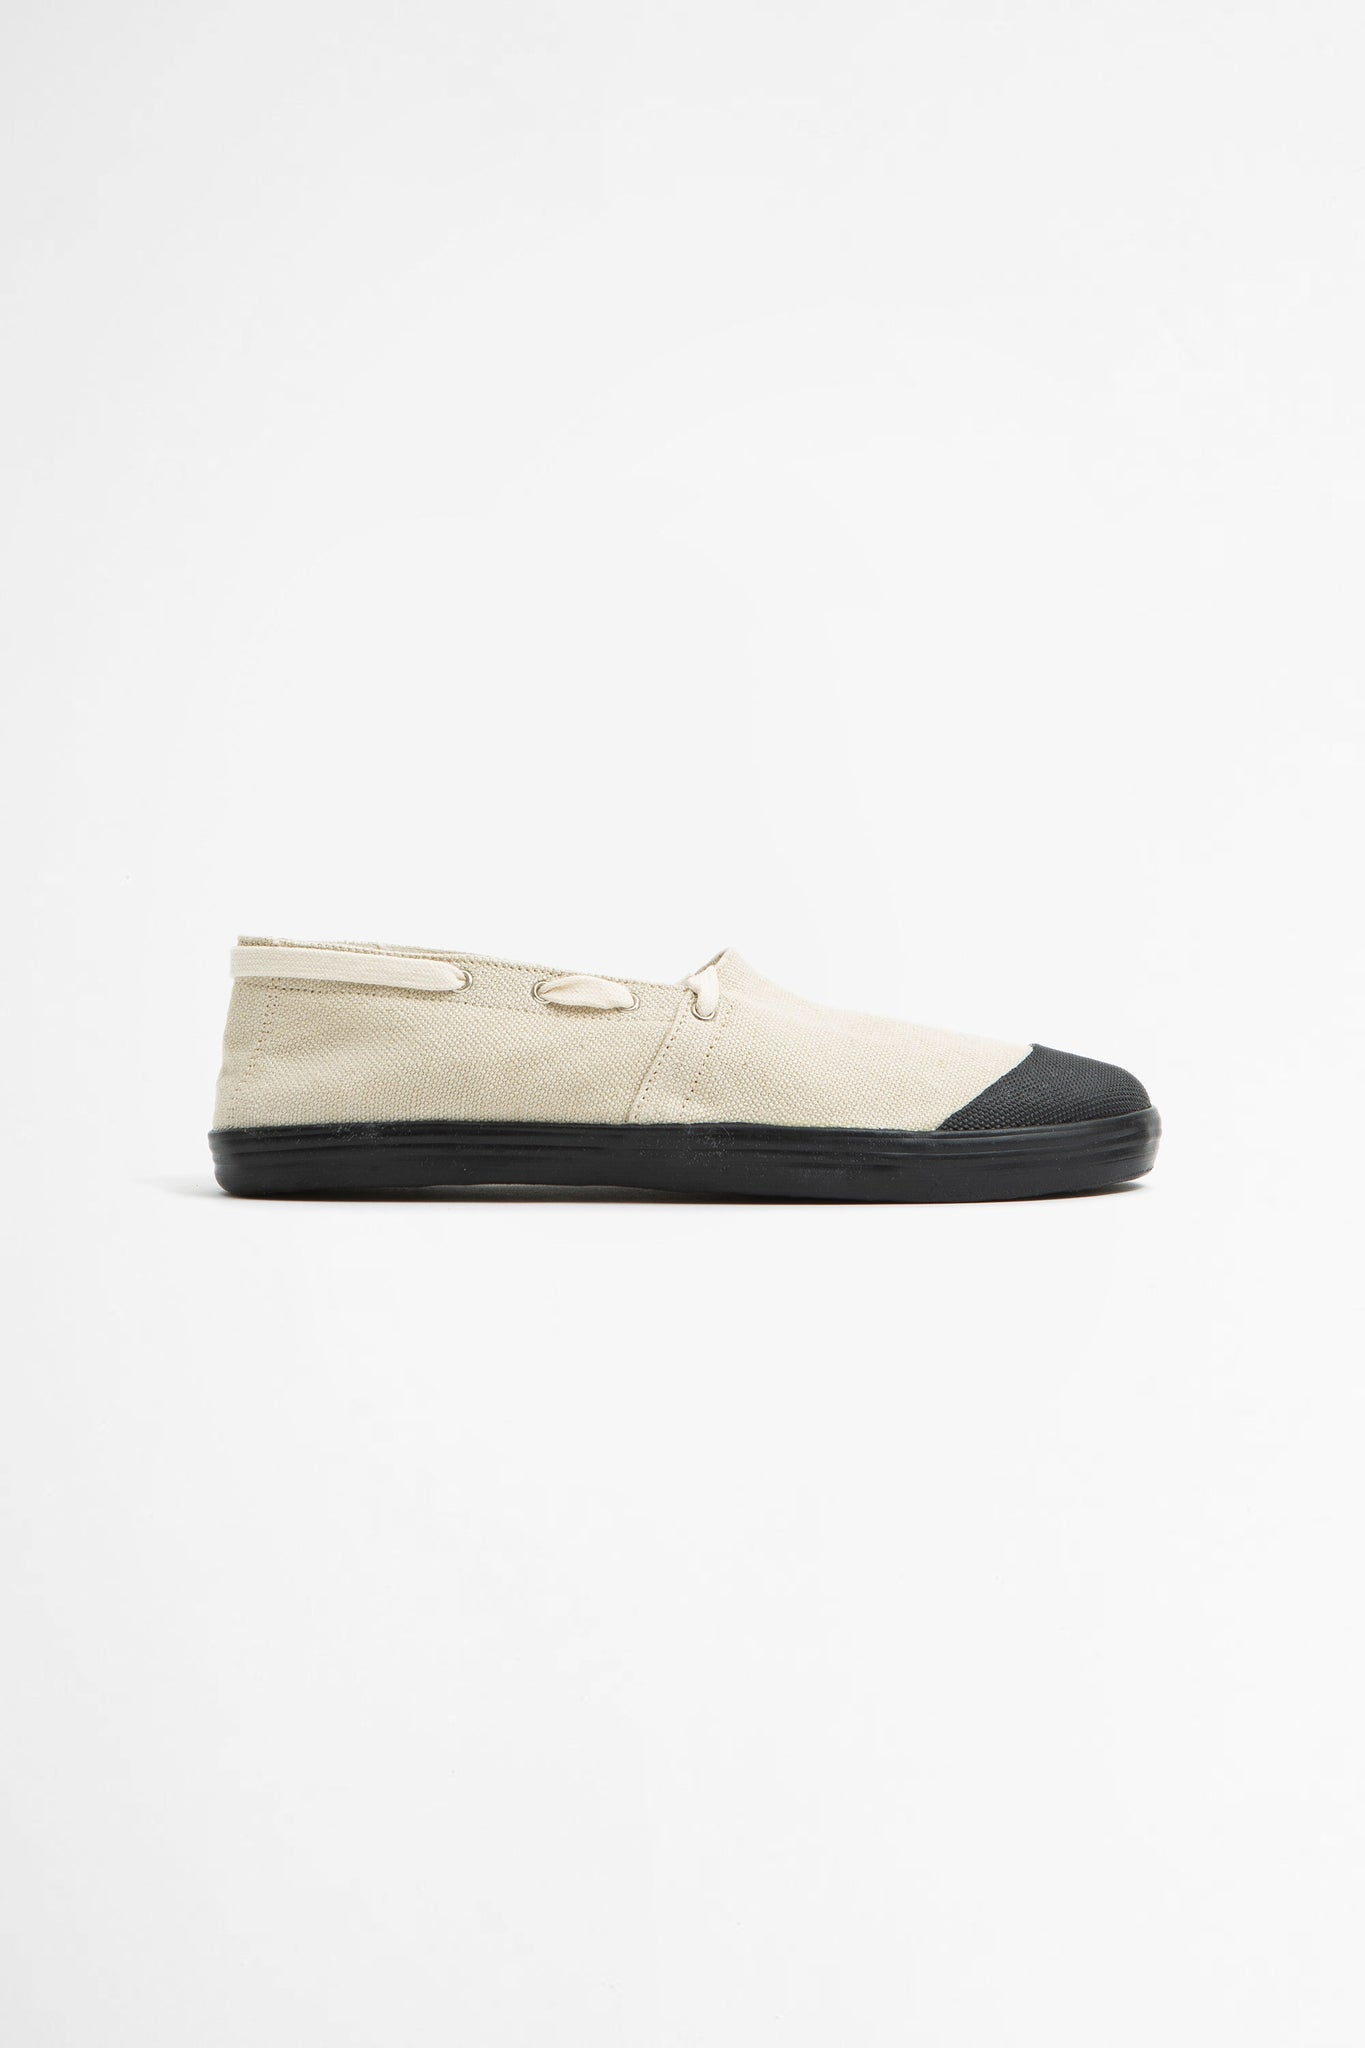 French military espadrilles natural/black sole